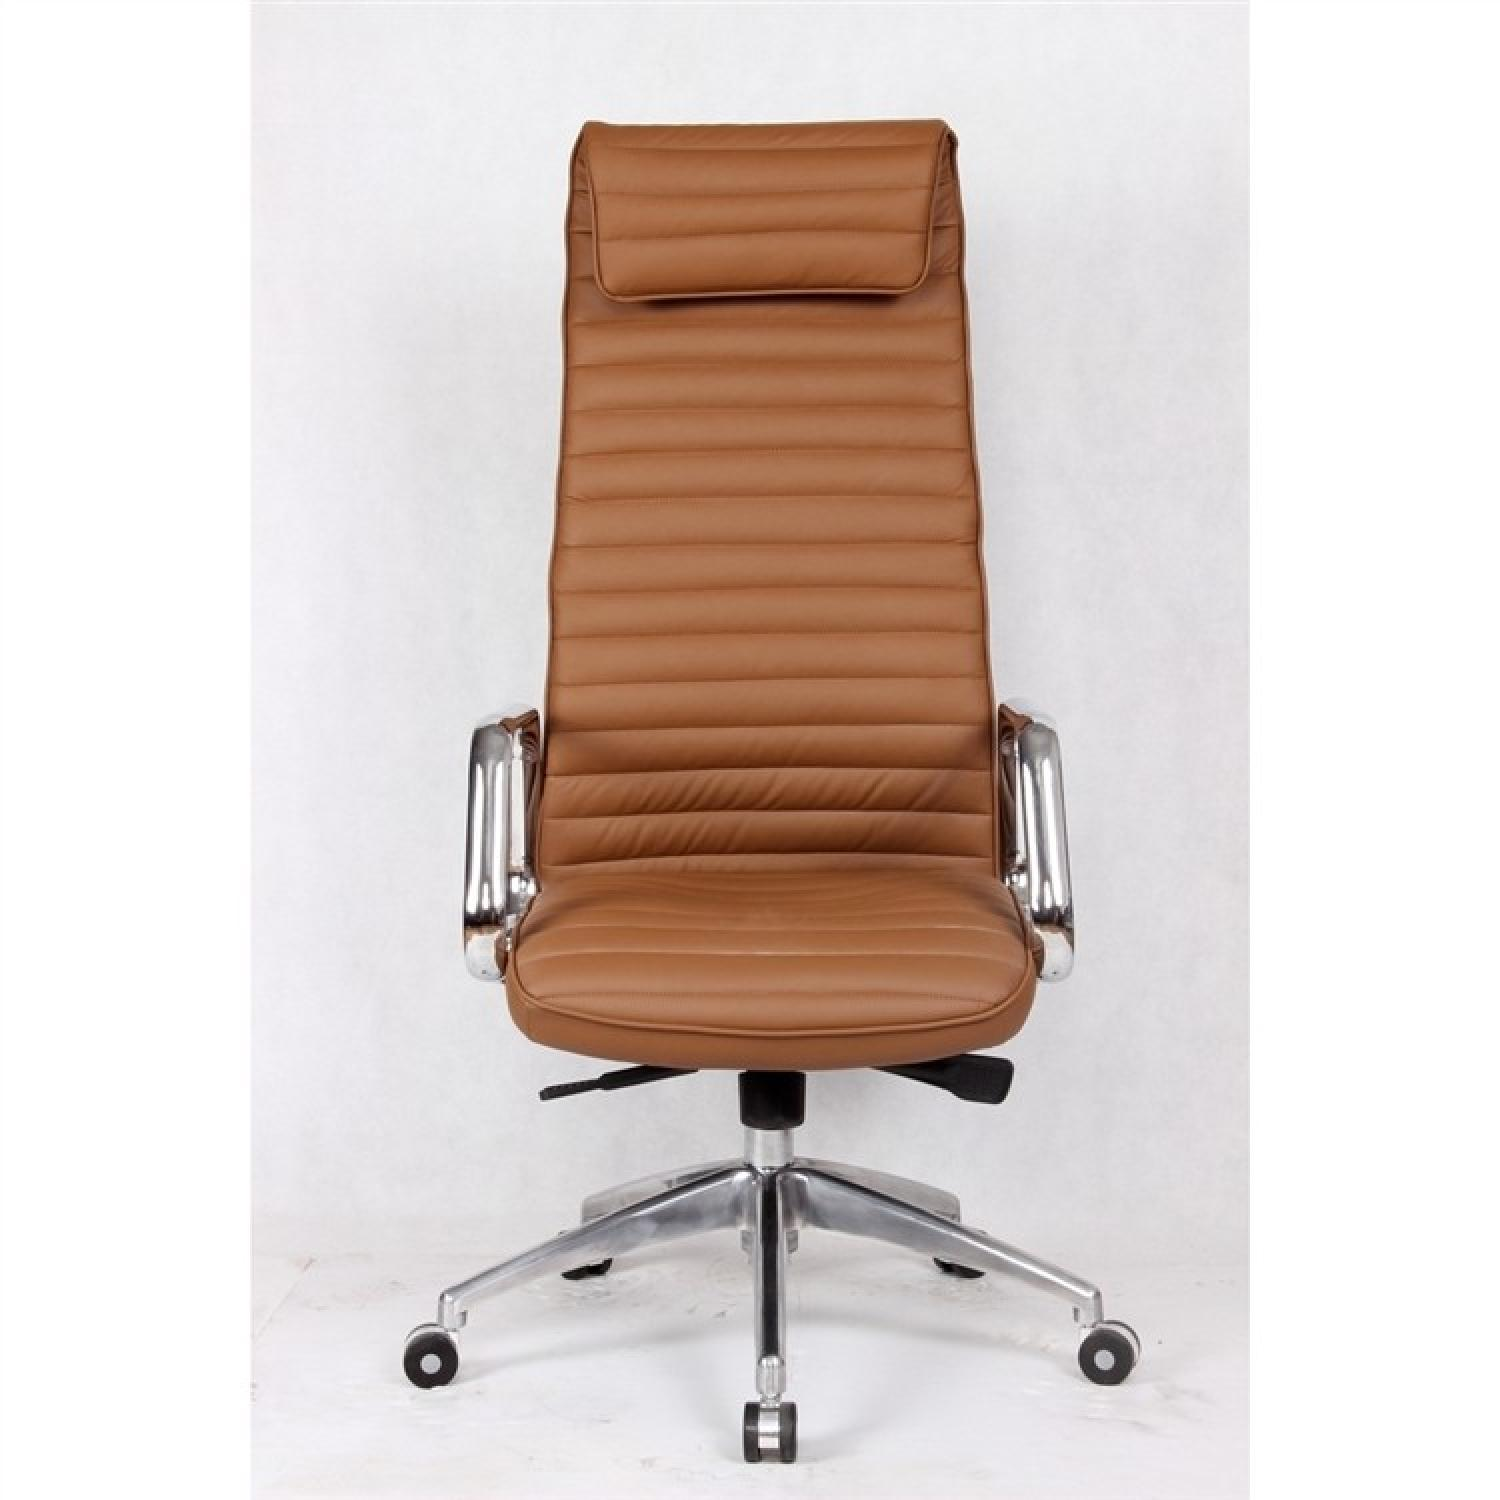 Steel Frame High Back Office Chair w/ Padded Seat & Back Uph-0